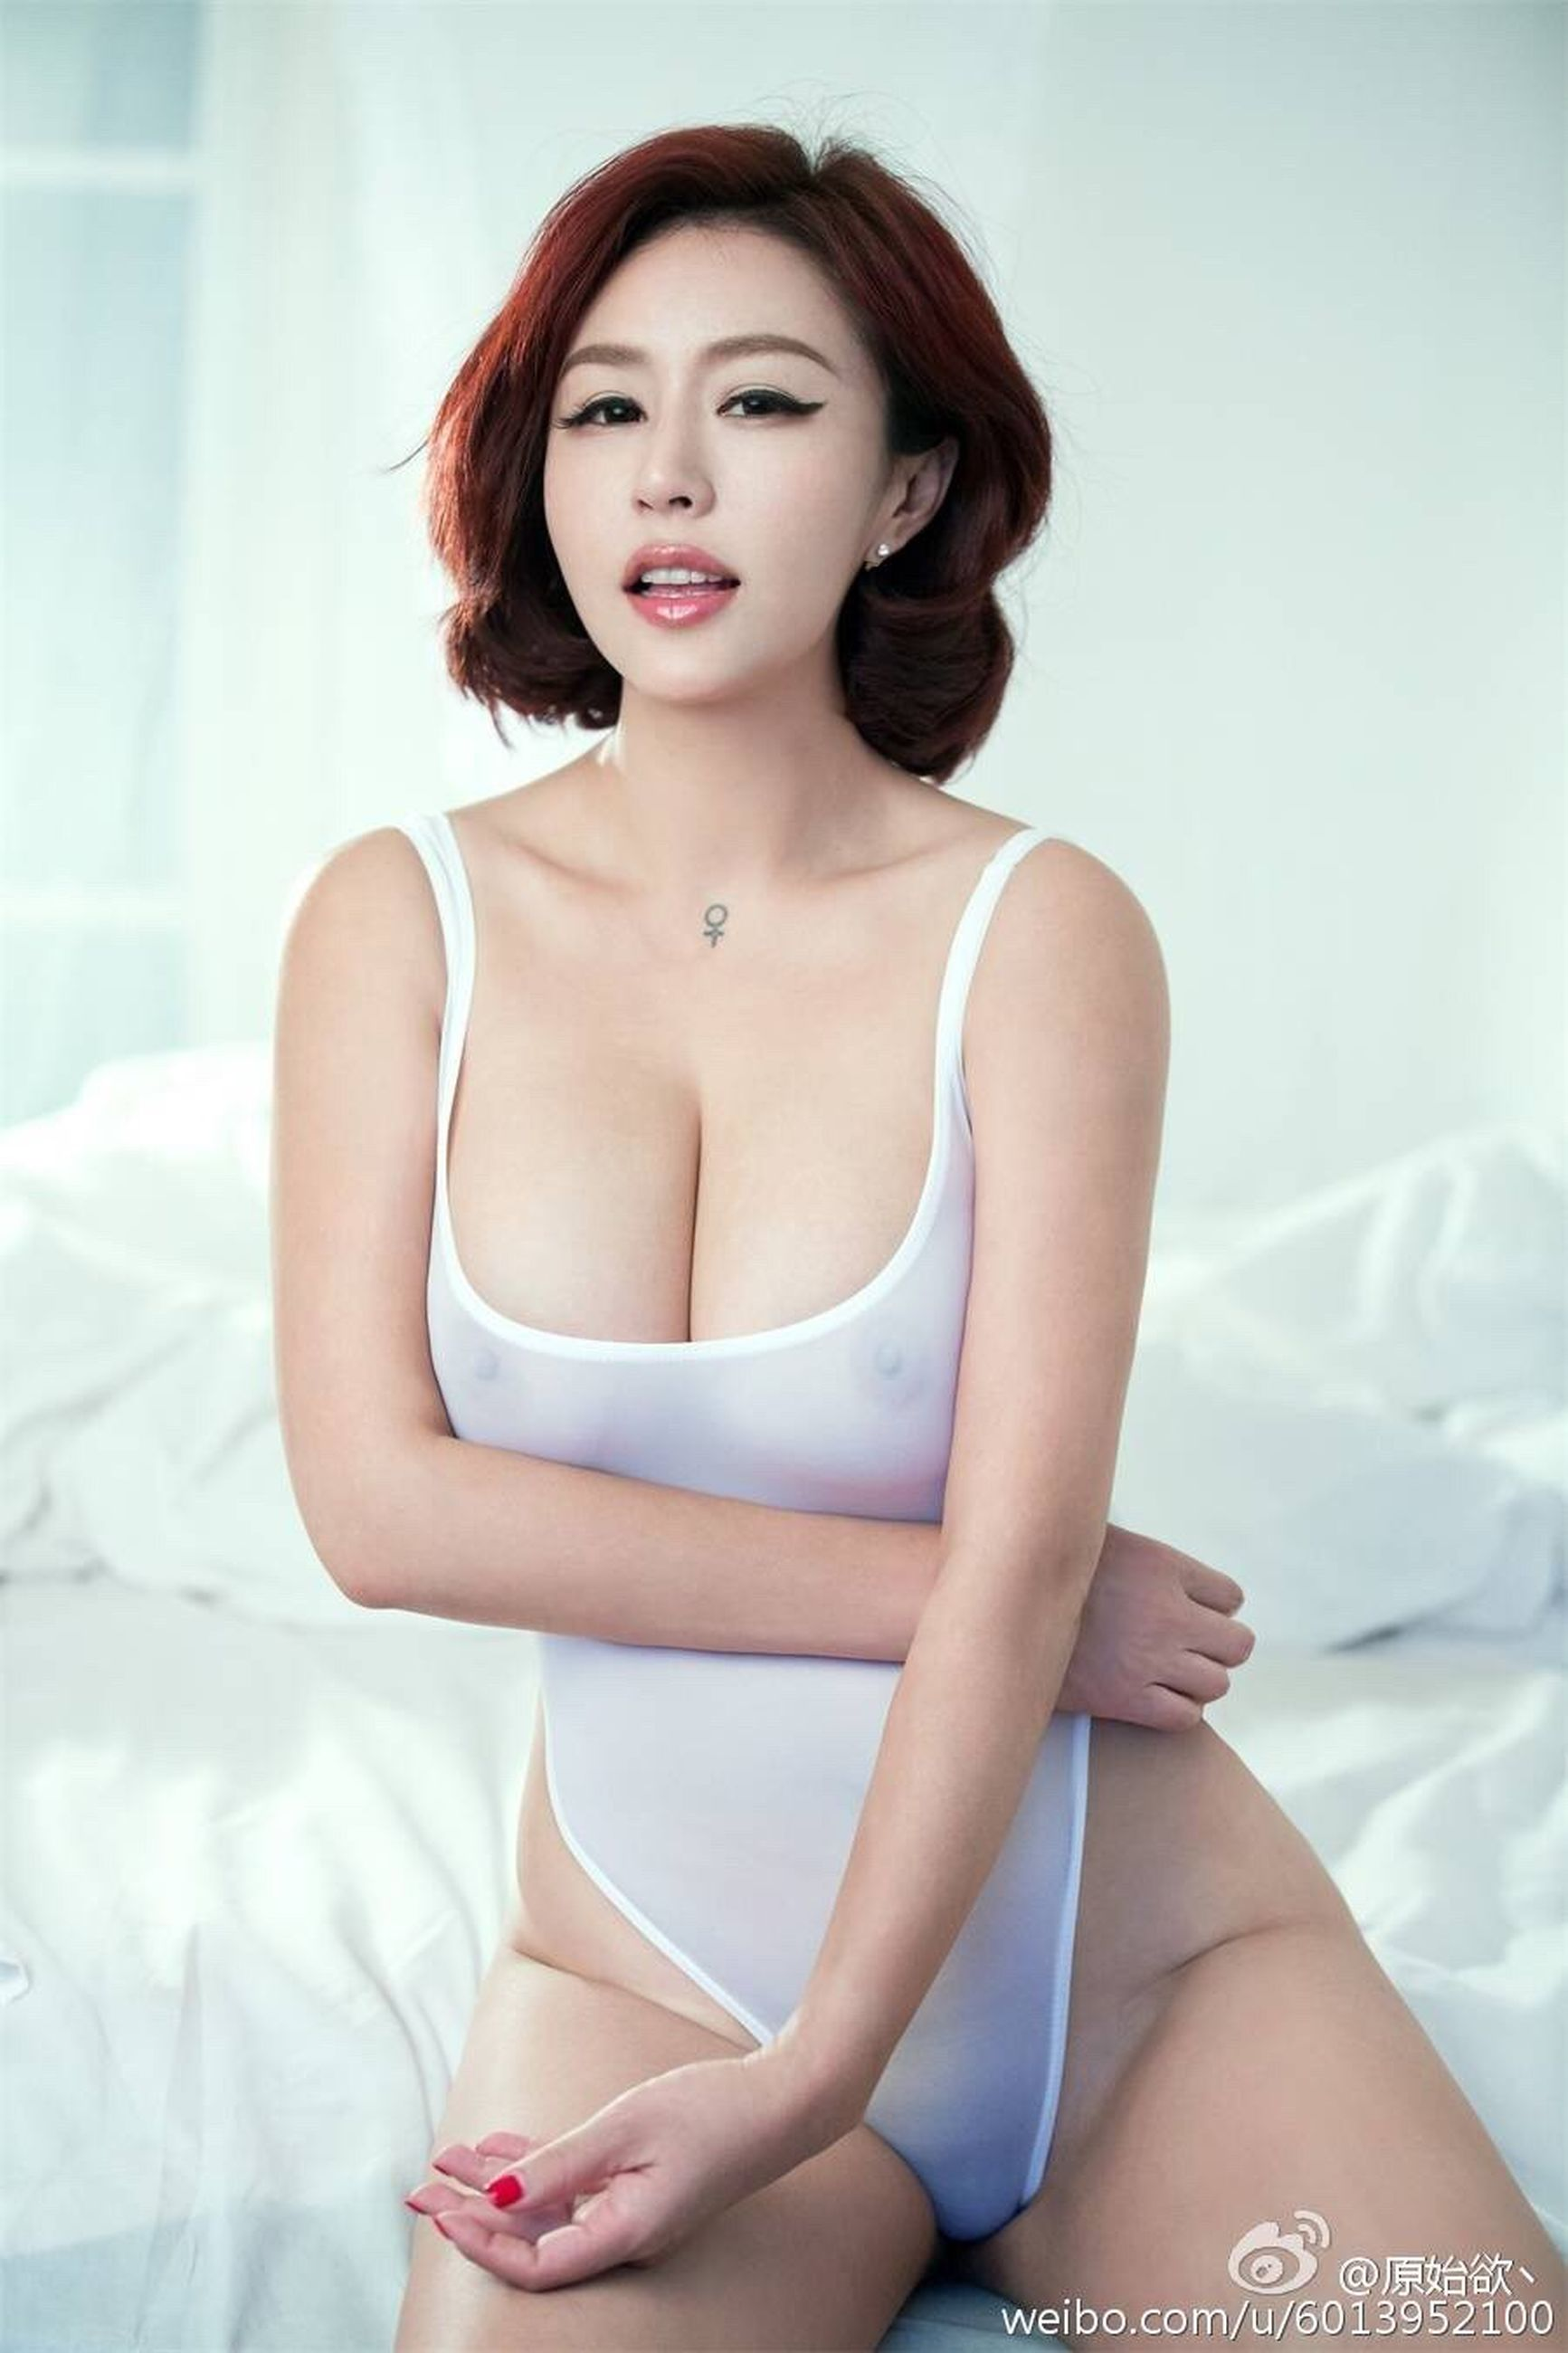 bed, bedroom, only women, beauty, one person, one woman only, sitting, adults only, one young woman only, young adult, people, adult, beautiful woman, indoors, day